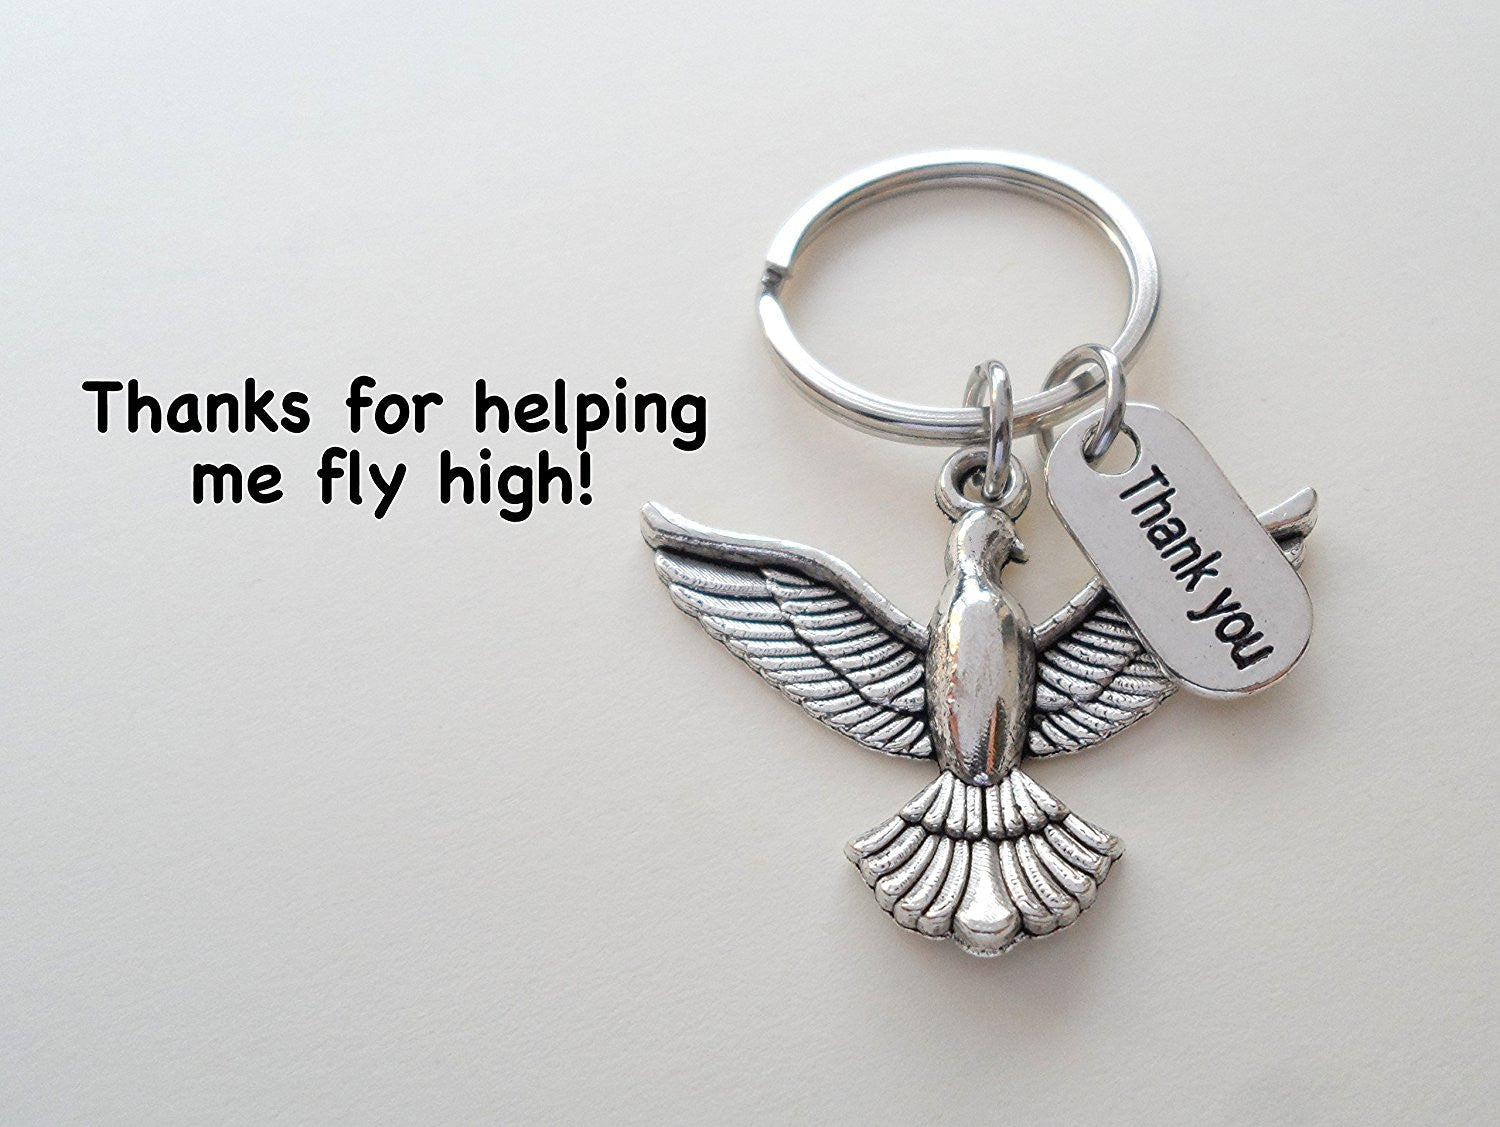 bird keychain appreciationgift thanks for helping me fly high